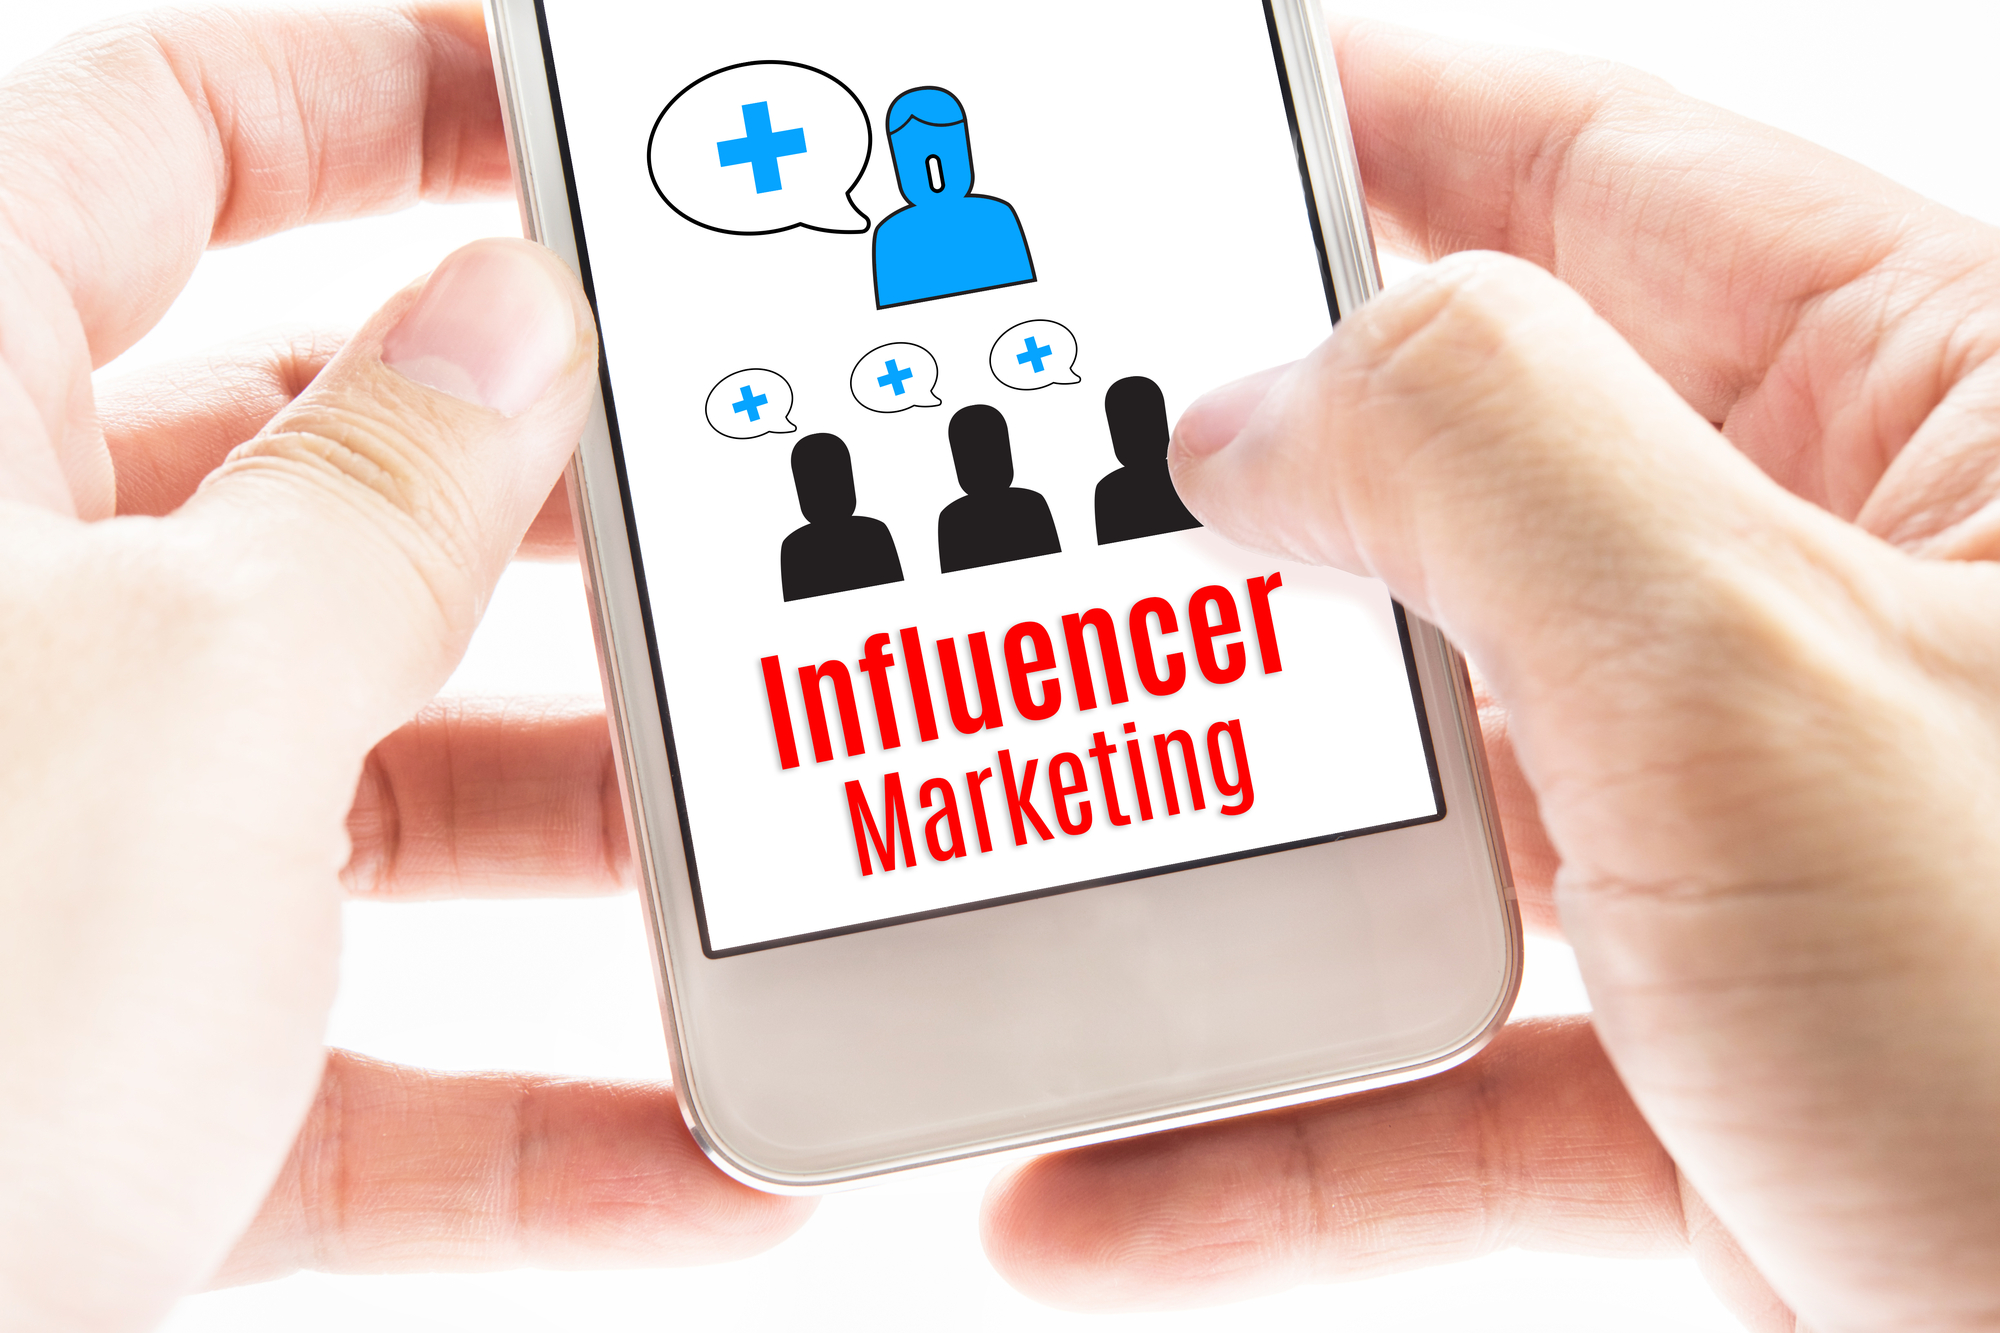 How to attract influencers to promote brand?